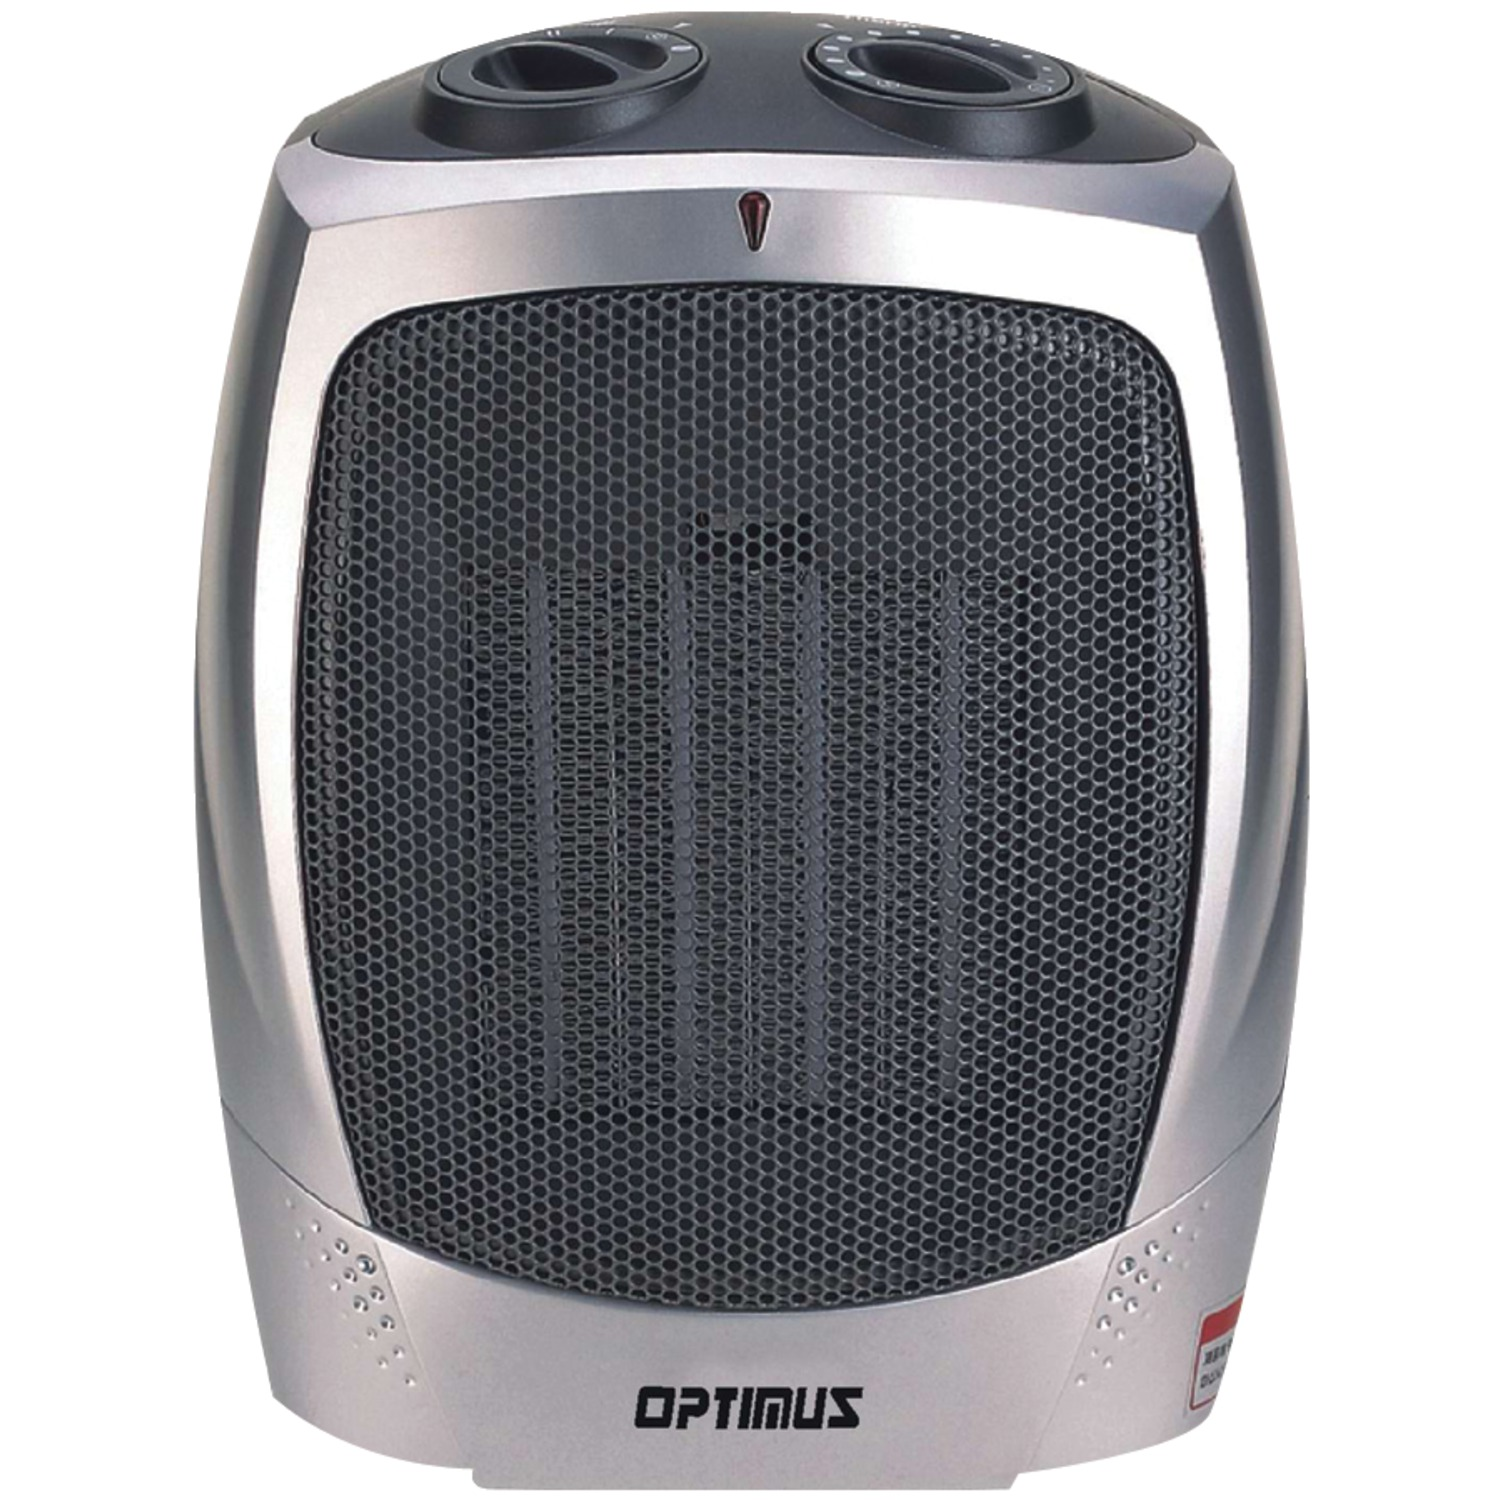 Optimus H-7004 Portable Ceramic Heater with Thermostat by Optimus